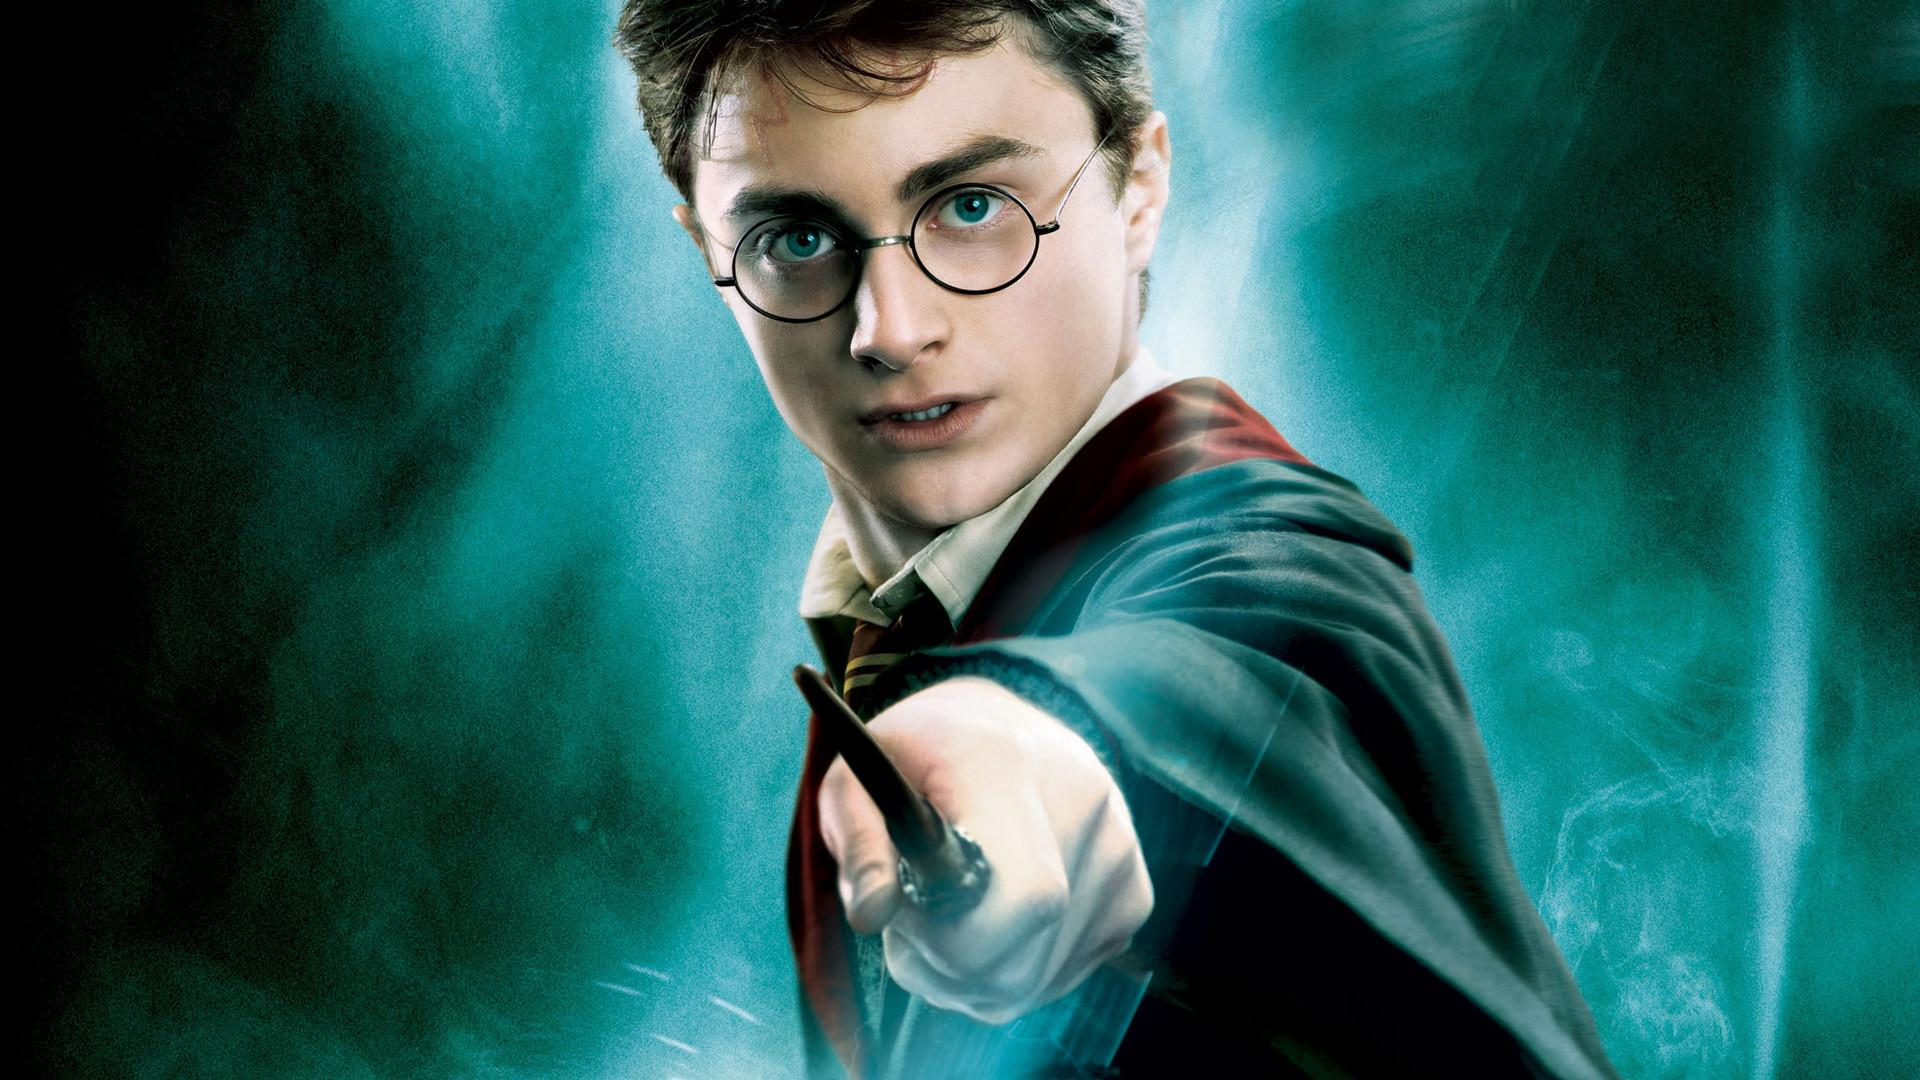 Harry Potter. [Source: Playbuzz.com]